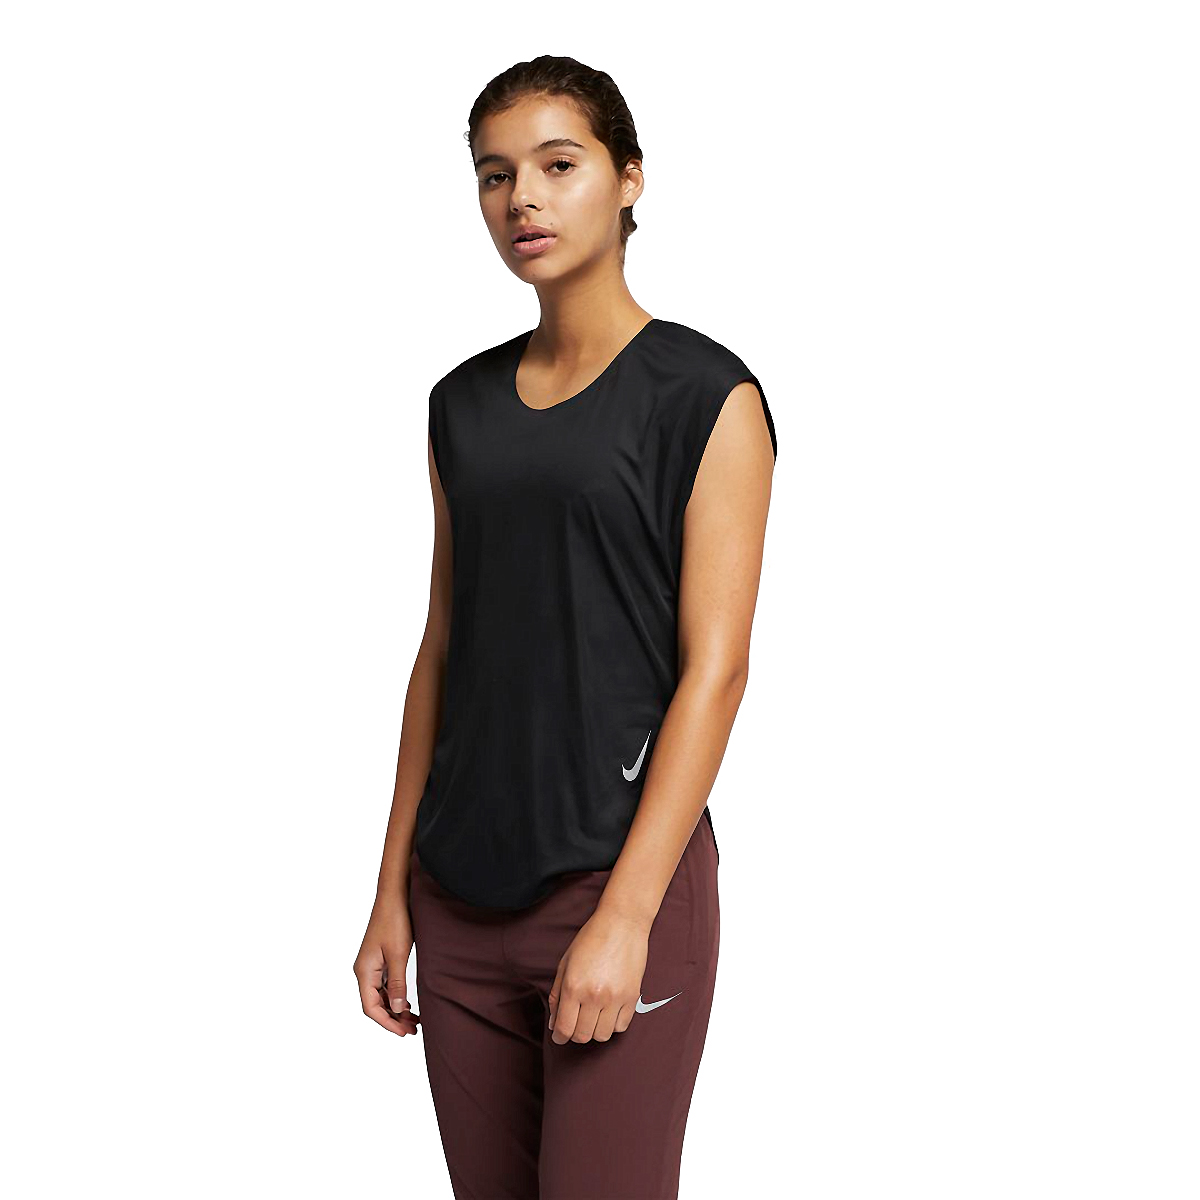 Women's Nike City Sleek Short Sleeve, , large, image 1